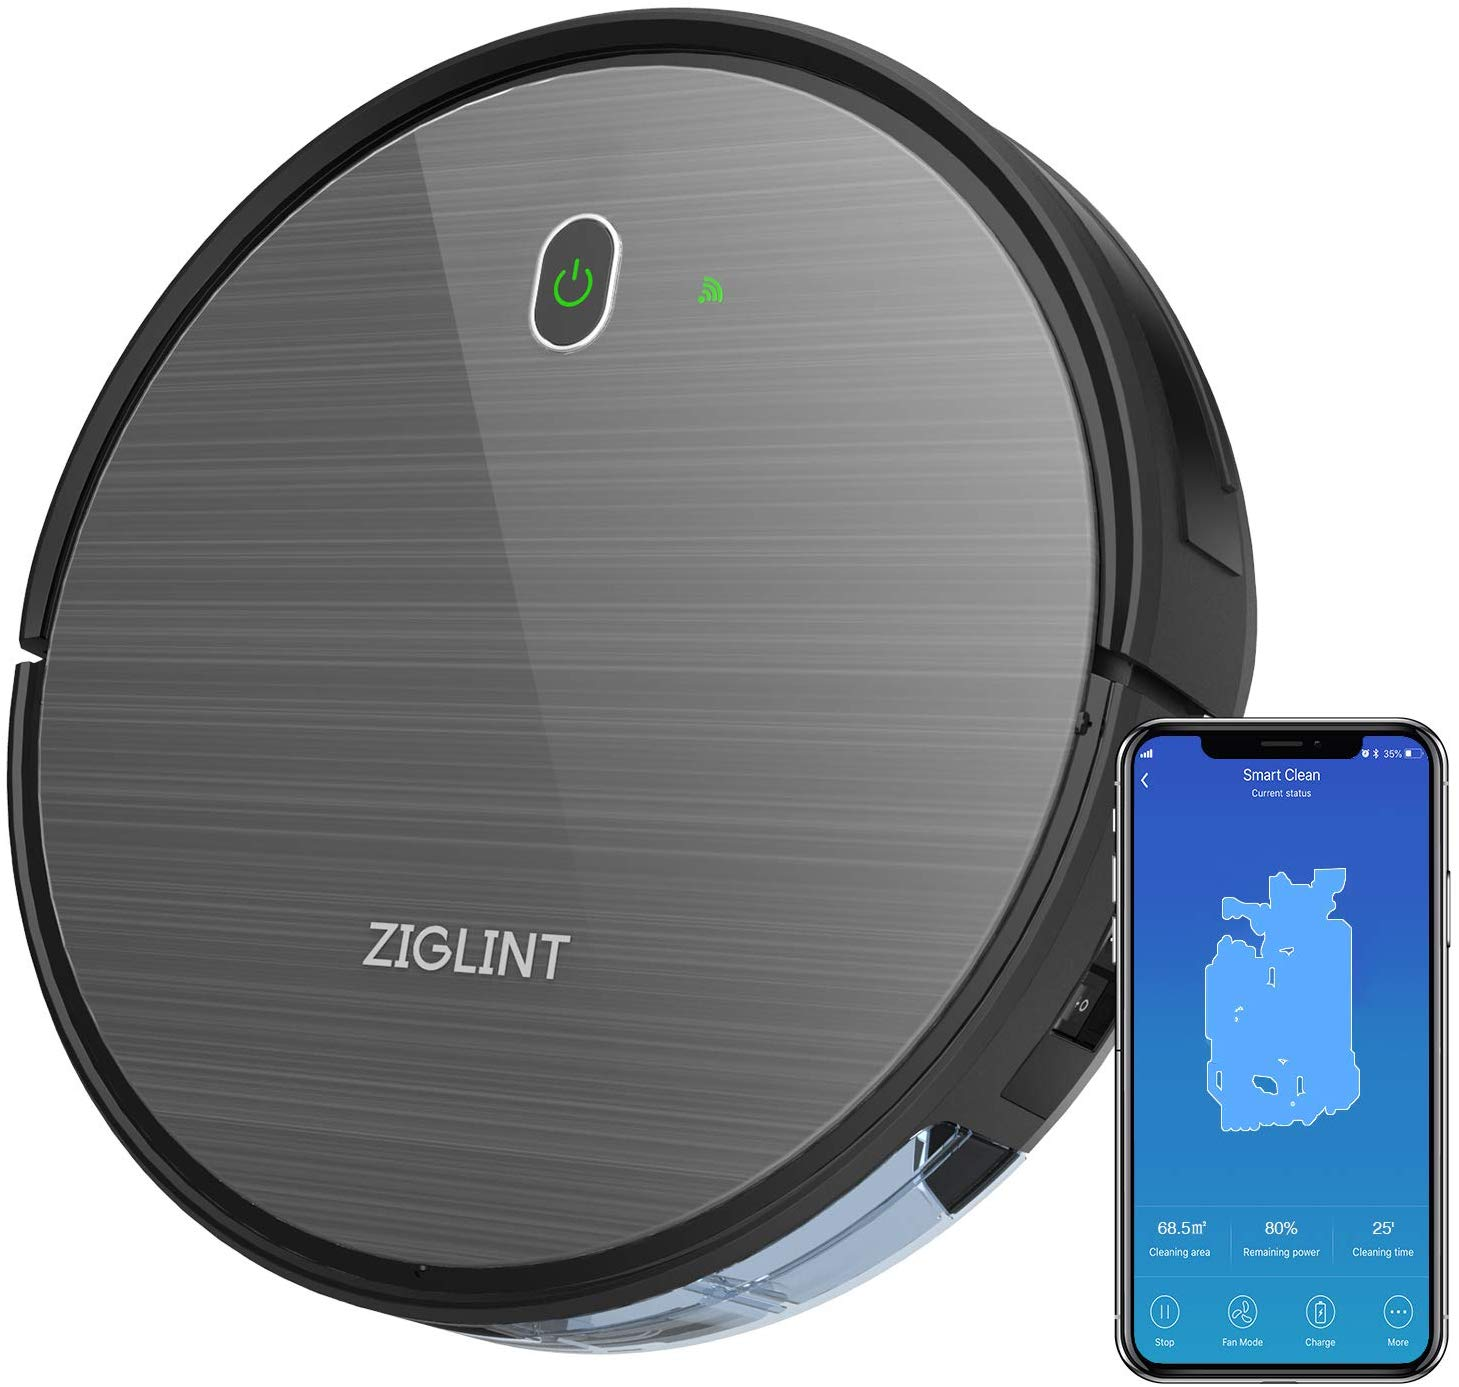 ZIGLINT D5 Robot Vacuum Cleaner -1800Pa Strong Suction